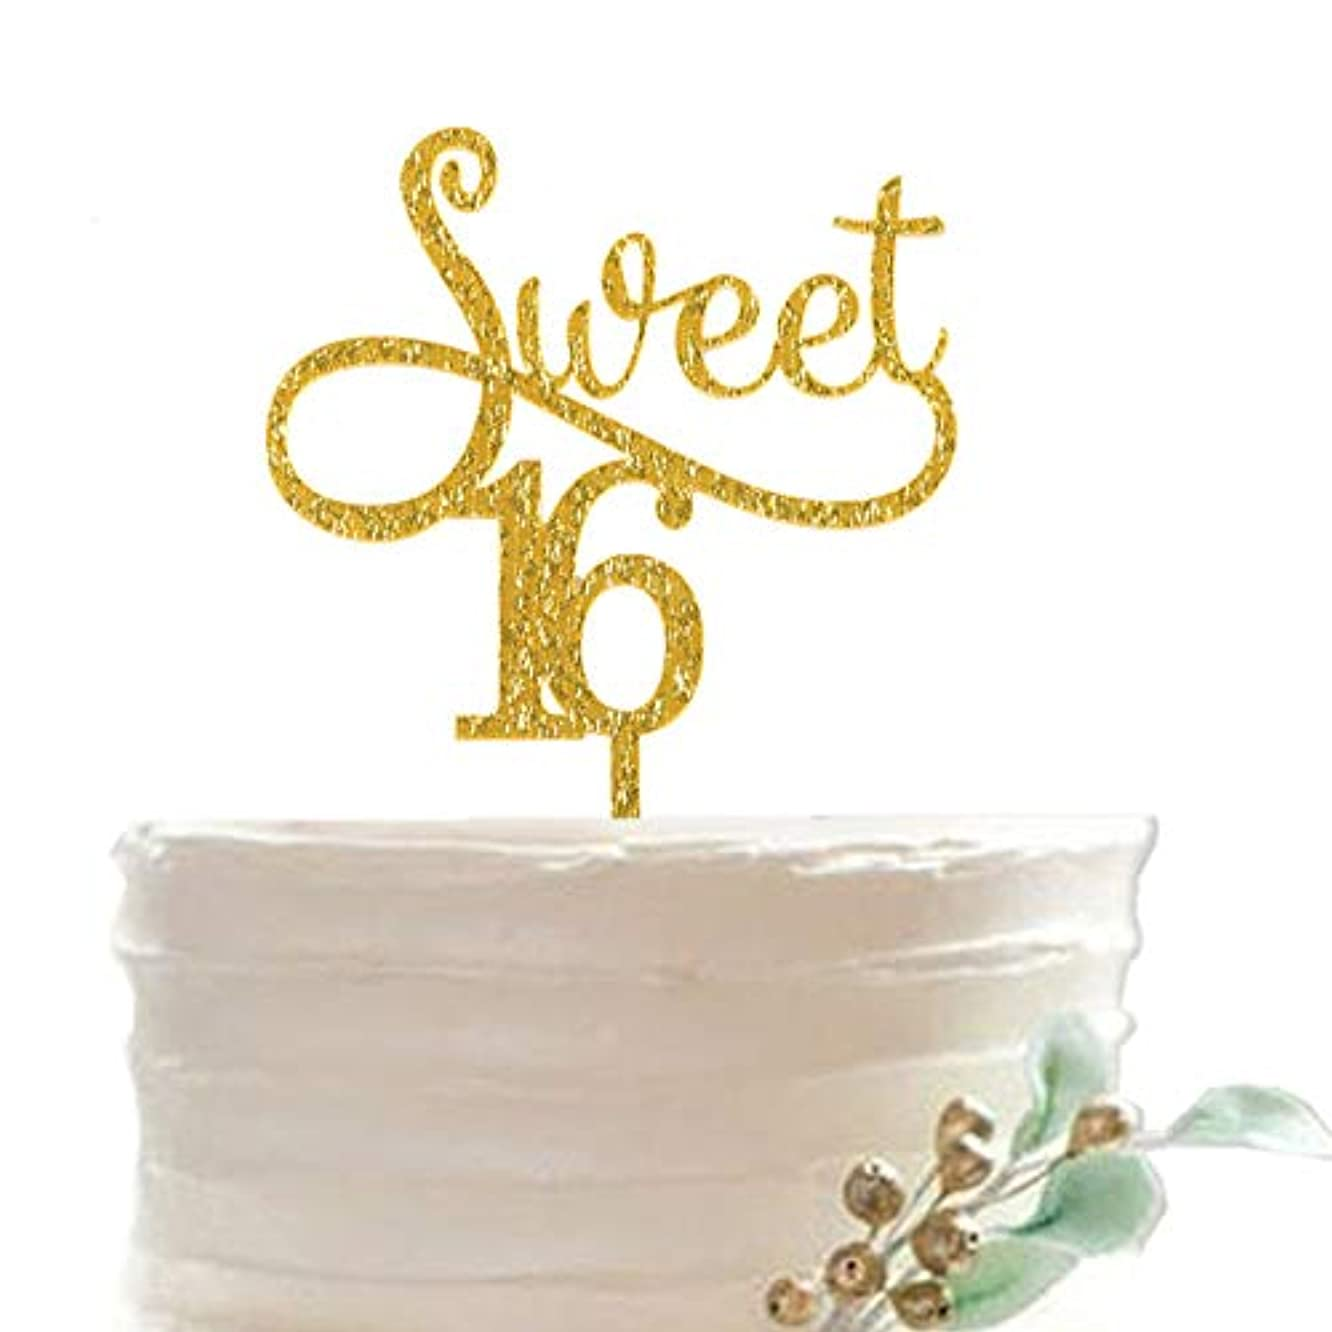 16 Years Old Birthday Decoration - Sweet 16 cake Topper for Sixteen Years Old Birthday, Gold Glitter Bling bling Acrylic 16 Year Anniversary Cake Topper